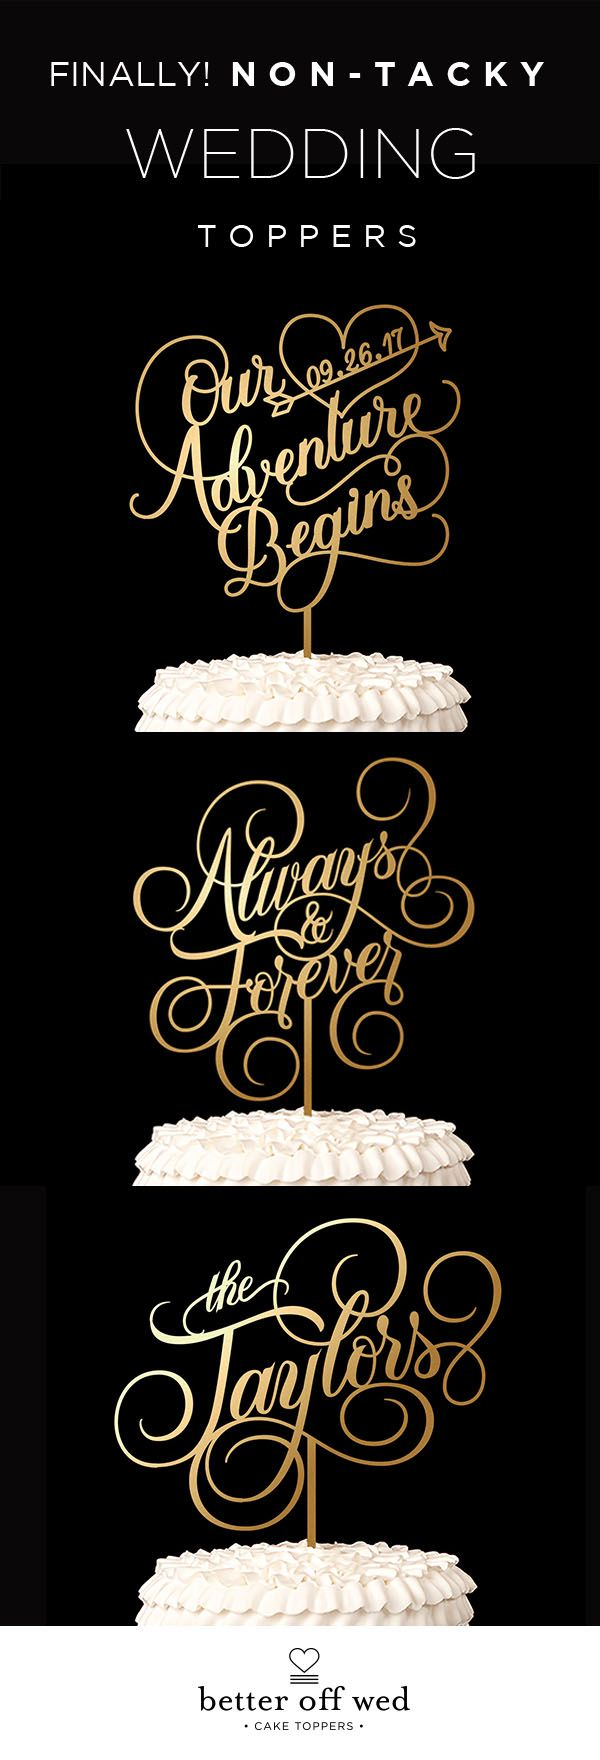 Our cake topper is the most special thing we've purchased for our wedding so far! www.betteroffwed.co (Cake Topper)